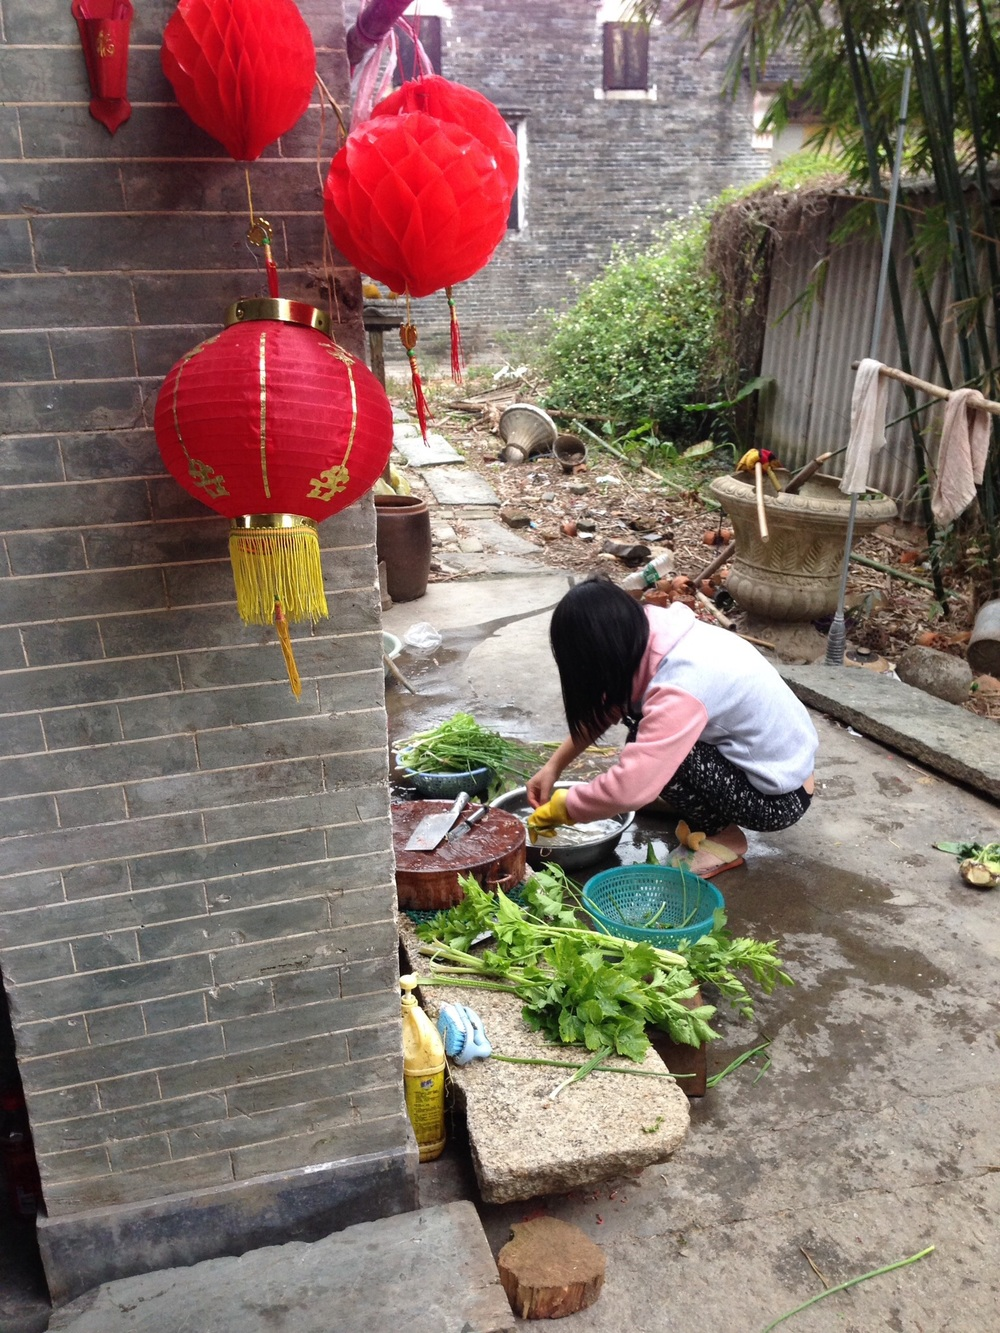 Local Kaiping resident preparing lunch